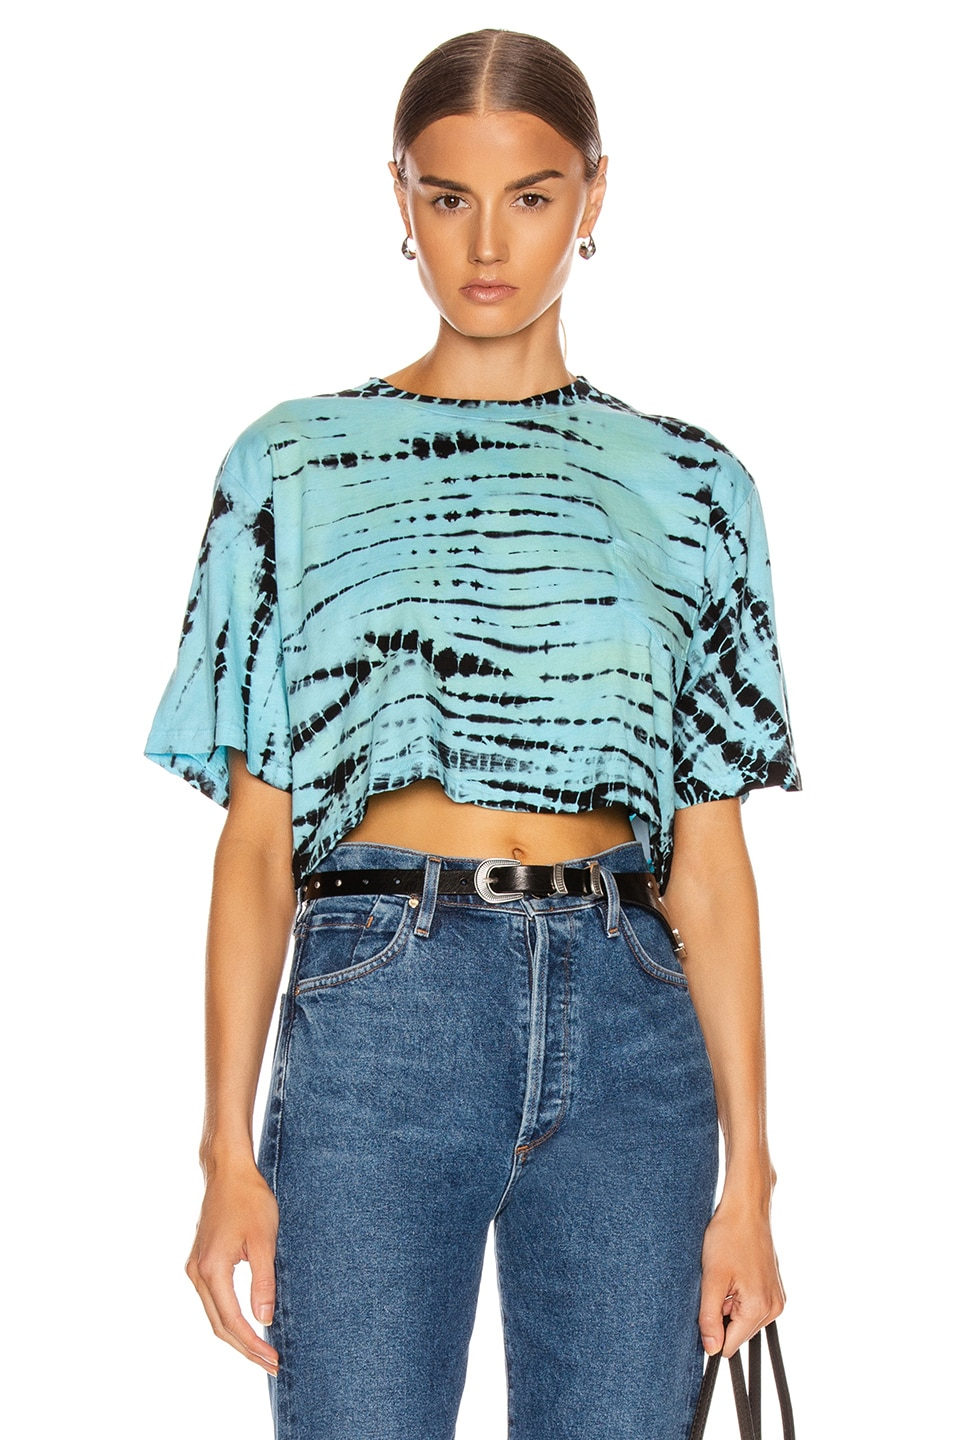 Image 1 of Frankie B Naomi Cropped Short Sleeve Tee in Turquoise & Black Tie Dye